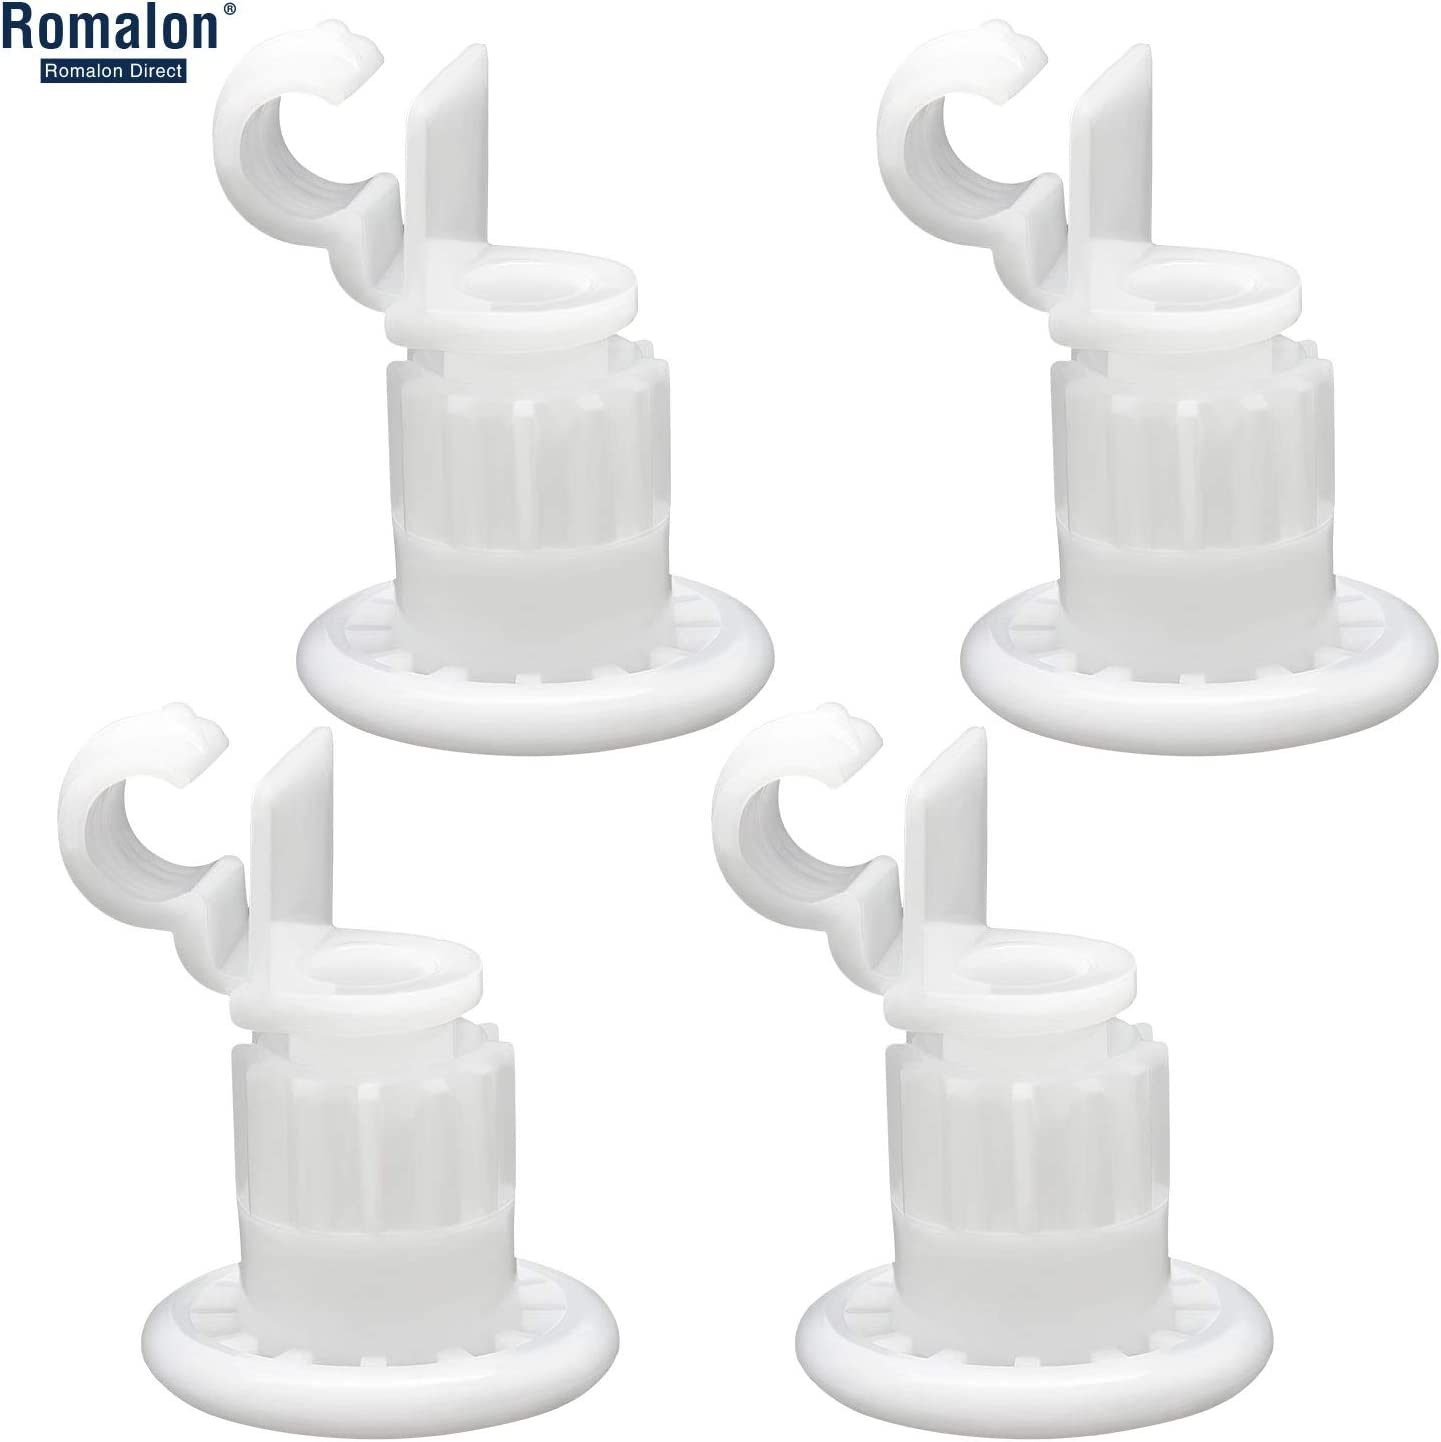 Romalon WD12X10327 Dishwasher Upper Rack Roller Wheel Set-4Pack Compatible With General Electric-Replace WD12X10327 WD12X383